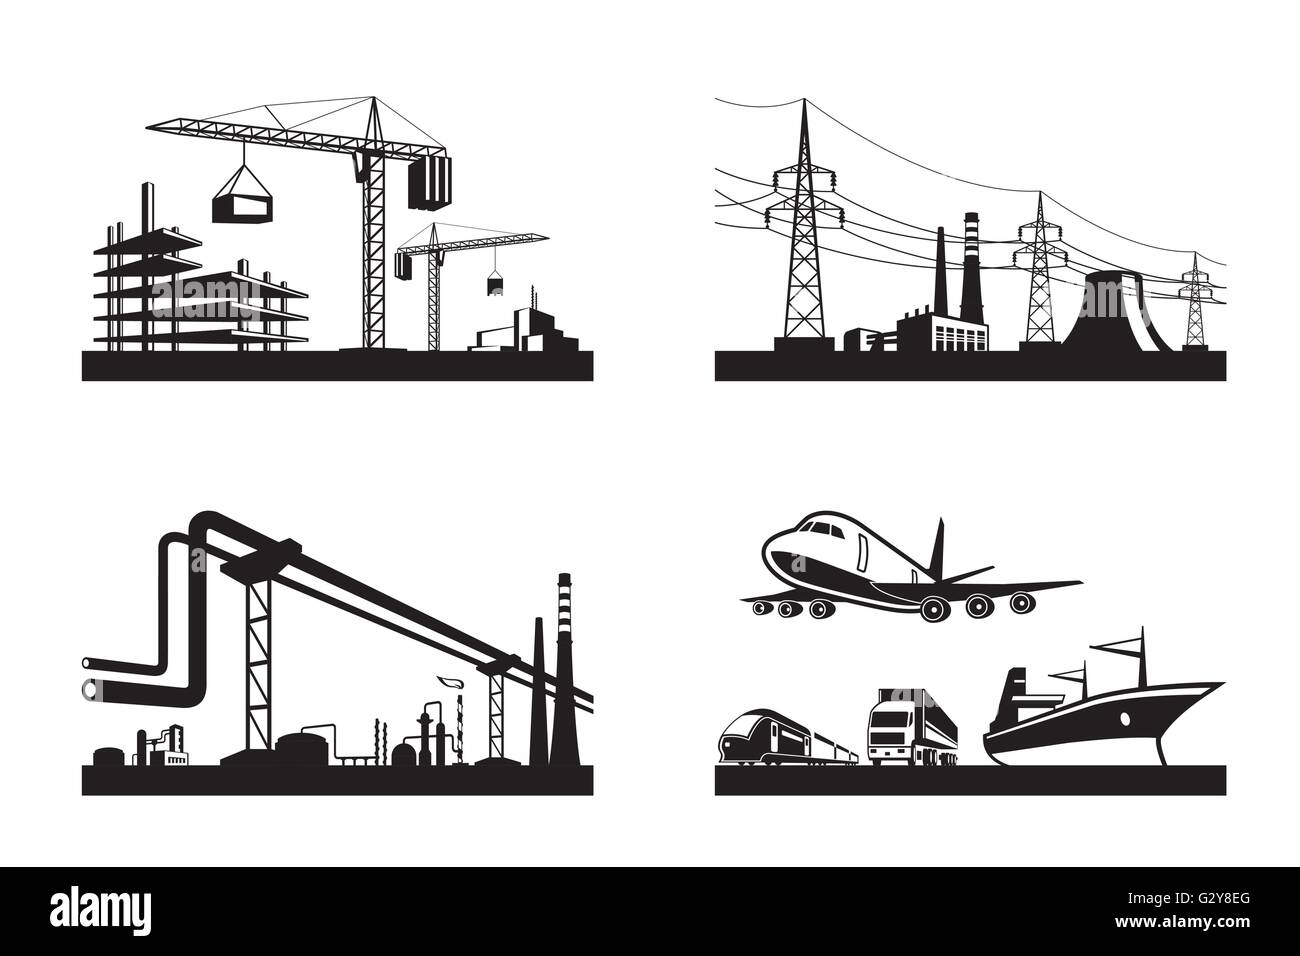 Different types of industries - vector illustration - Stock Image